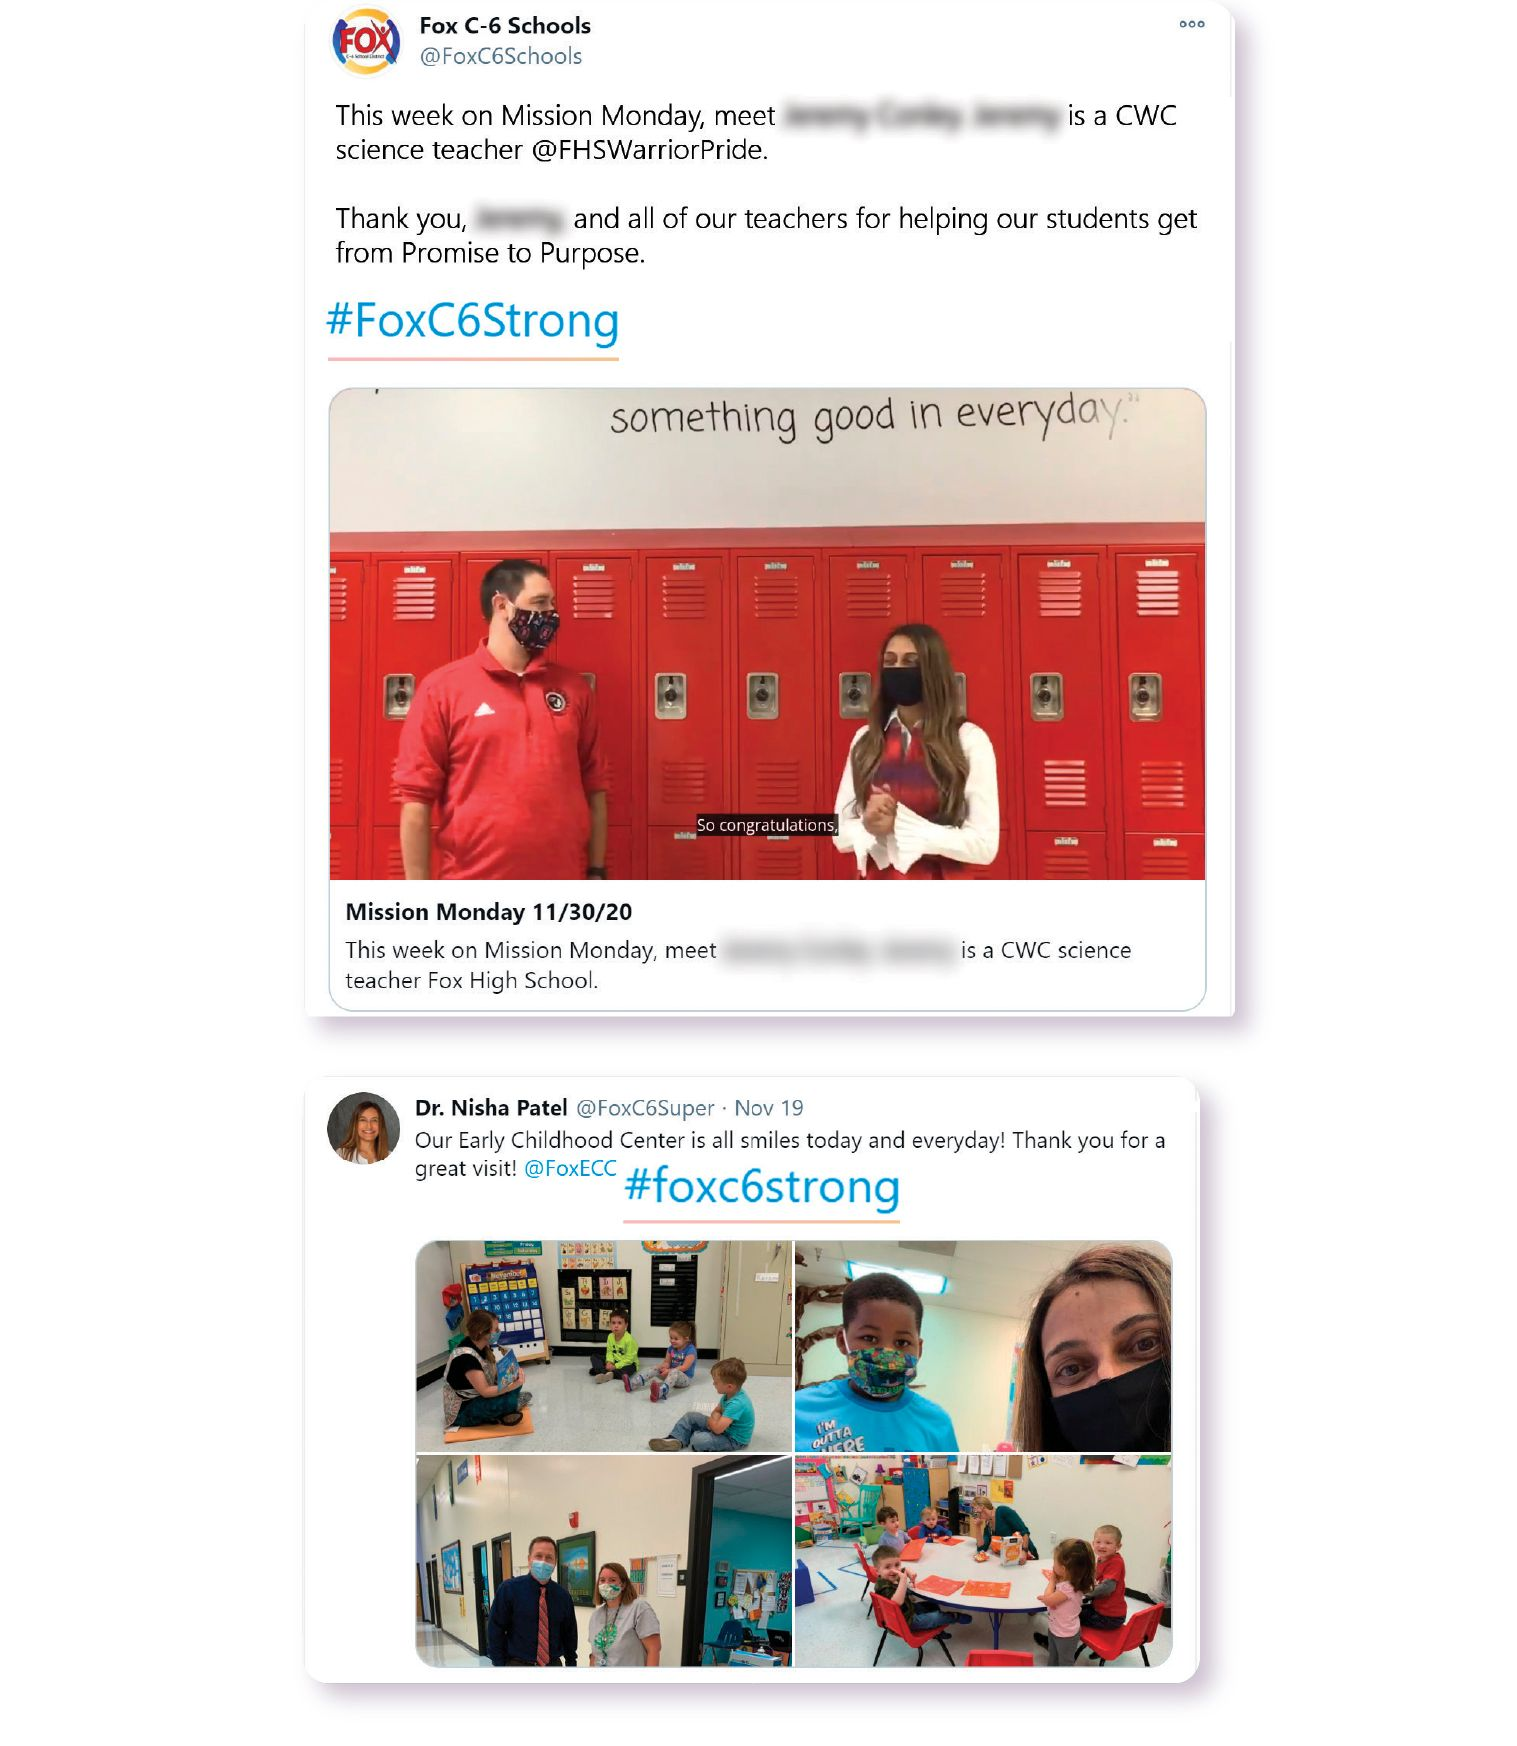 Image: Both the offical Fox C-6 Twitter account as well as Dr. Nisha Patel's personal Twitter utilize the #FoxC6Strong hashtag to highlight their teachers and staff.